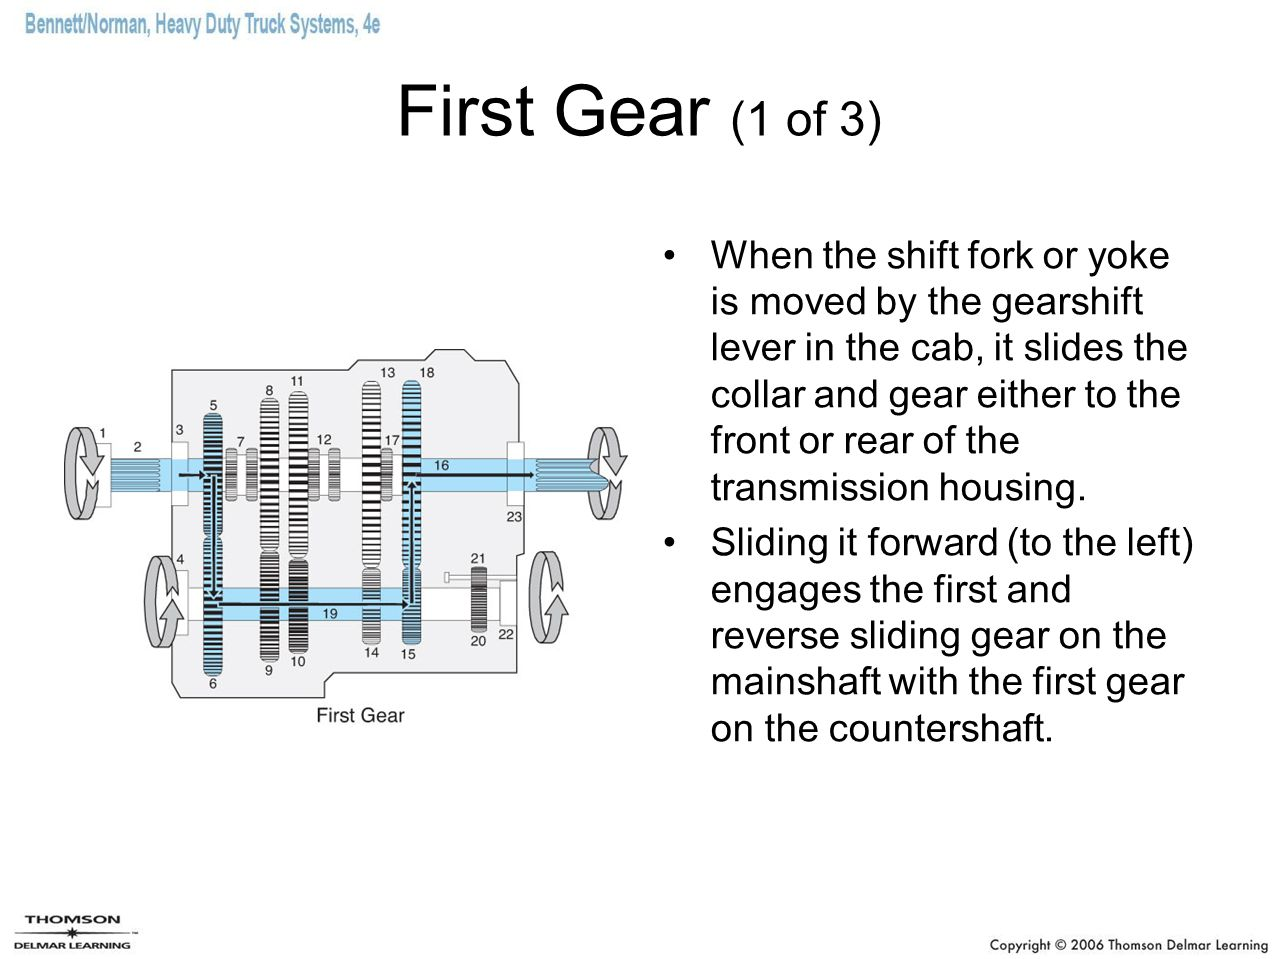 First Gear (1 of 3)